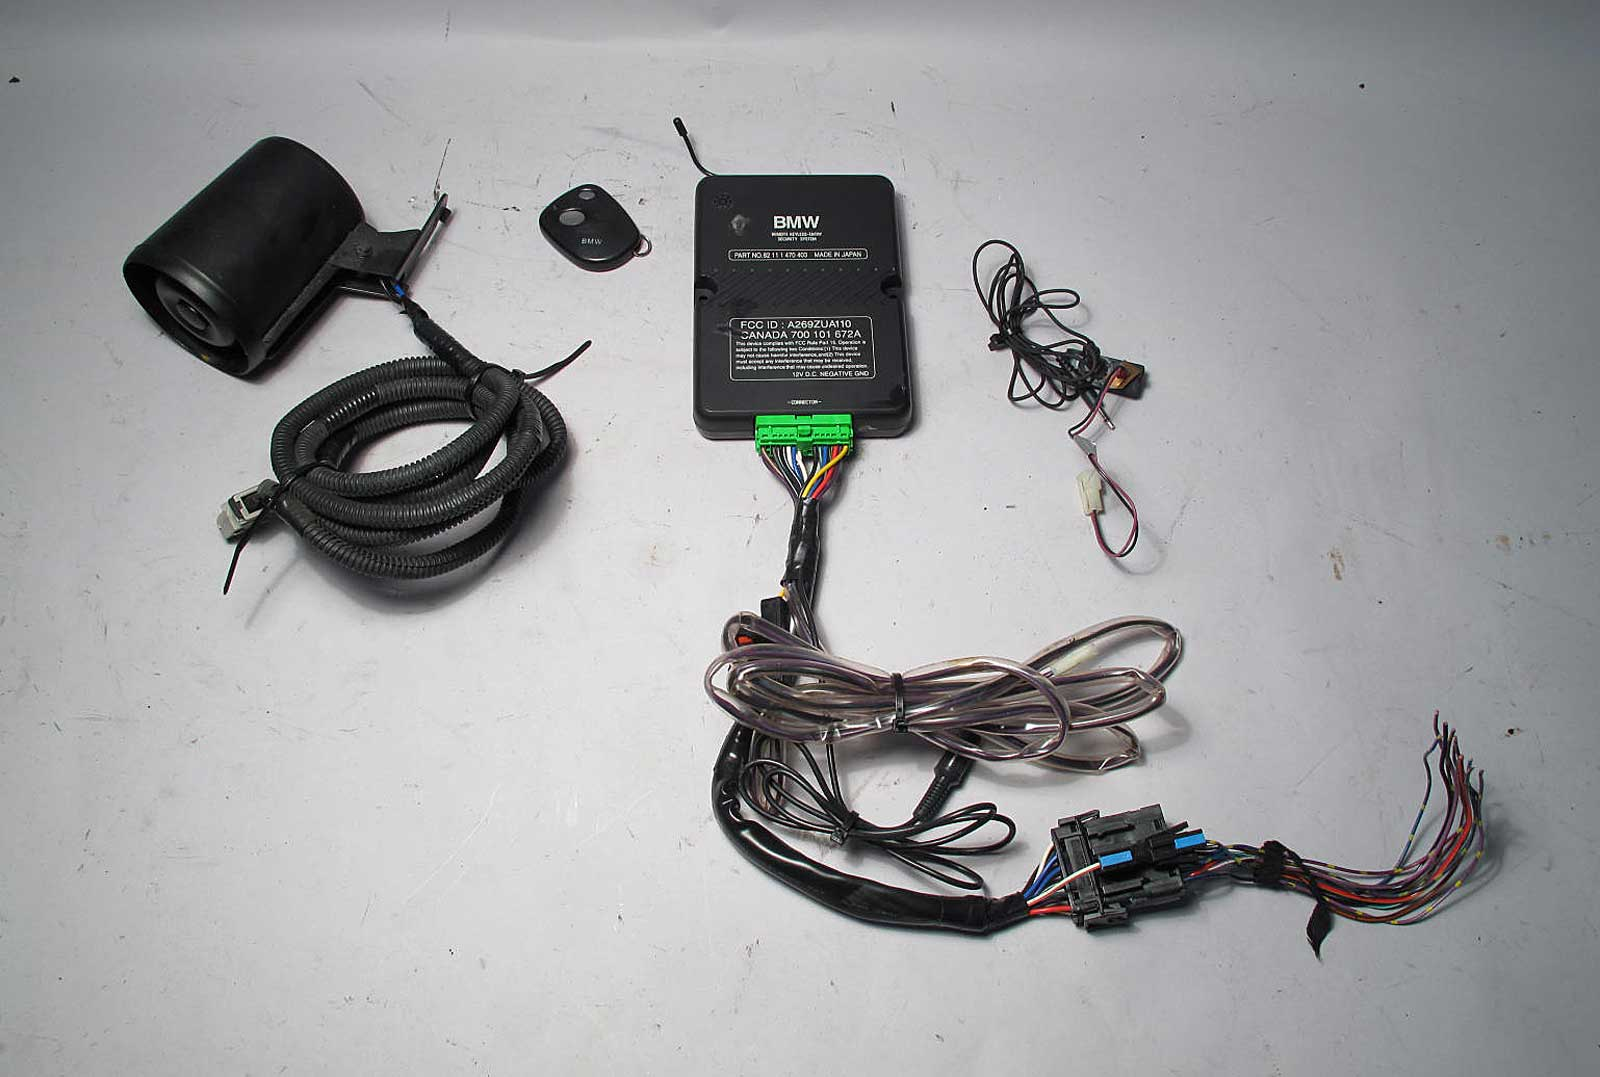 Bmw Z3 Roadster Factory Alarm System Kit With Siren Fob